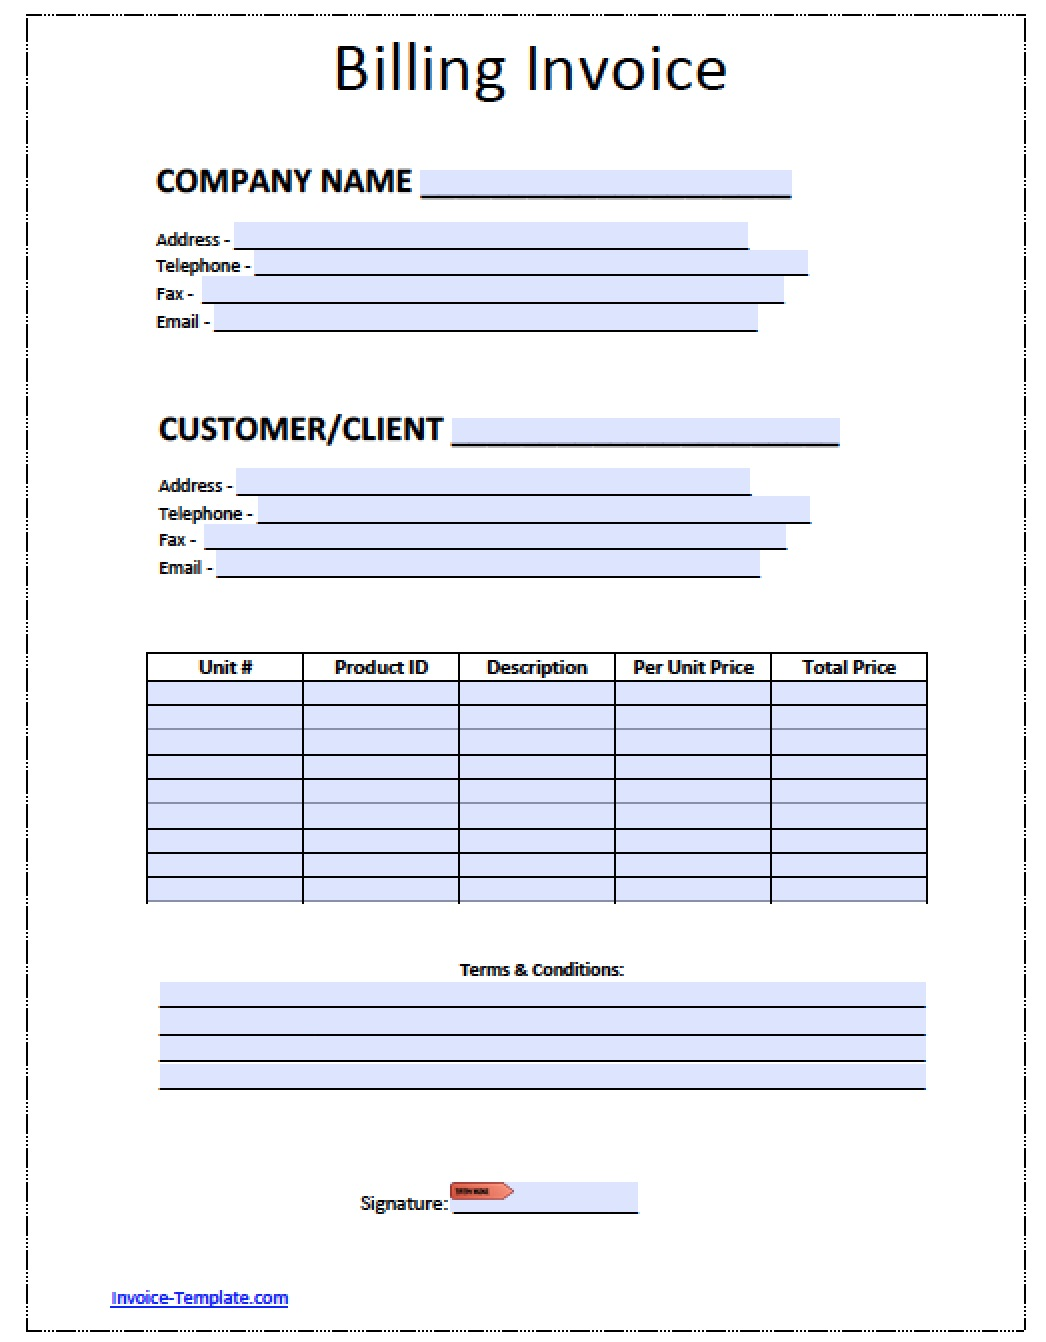 Centralasianshepherdus  Terrific Billing Invoice Invoices Faq U Cloudflare Support Billing  With Great Free Billing Invoice Template  Excel  Pdf  Word Doc  Billing With Beautiful New Car Invoice Price Also Anayx Invoices In Addition Apple Invoice And Word Invoice As Well As Invoice Generator Com Additionally Invoice Blank From Happytomco With Centralasianshepherdus  Great Billing Invoice Invoices Faq U Cloudflare Support Billing  With Beautiful Free Billing Invoice Template  Excel  Pdf  Word Doc  Billing And Terrific New Car Invoice Price Also Anayx Invoices In Addition Apple Invoice From Happytomco